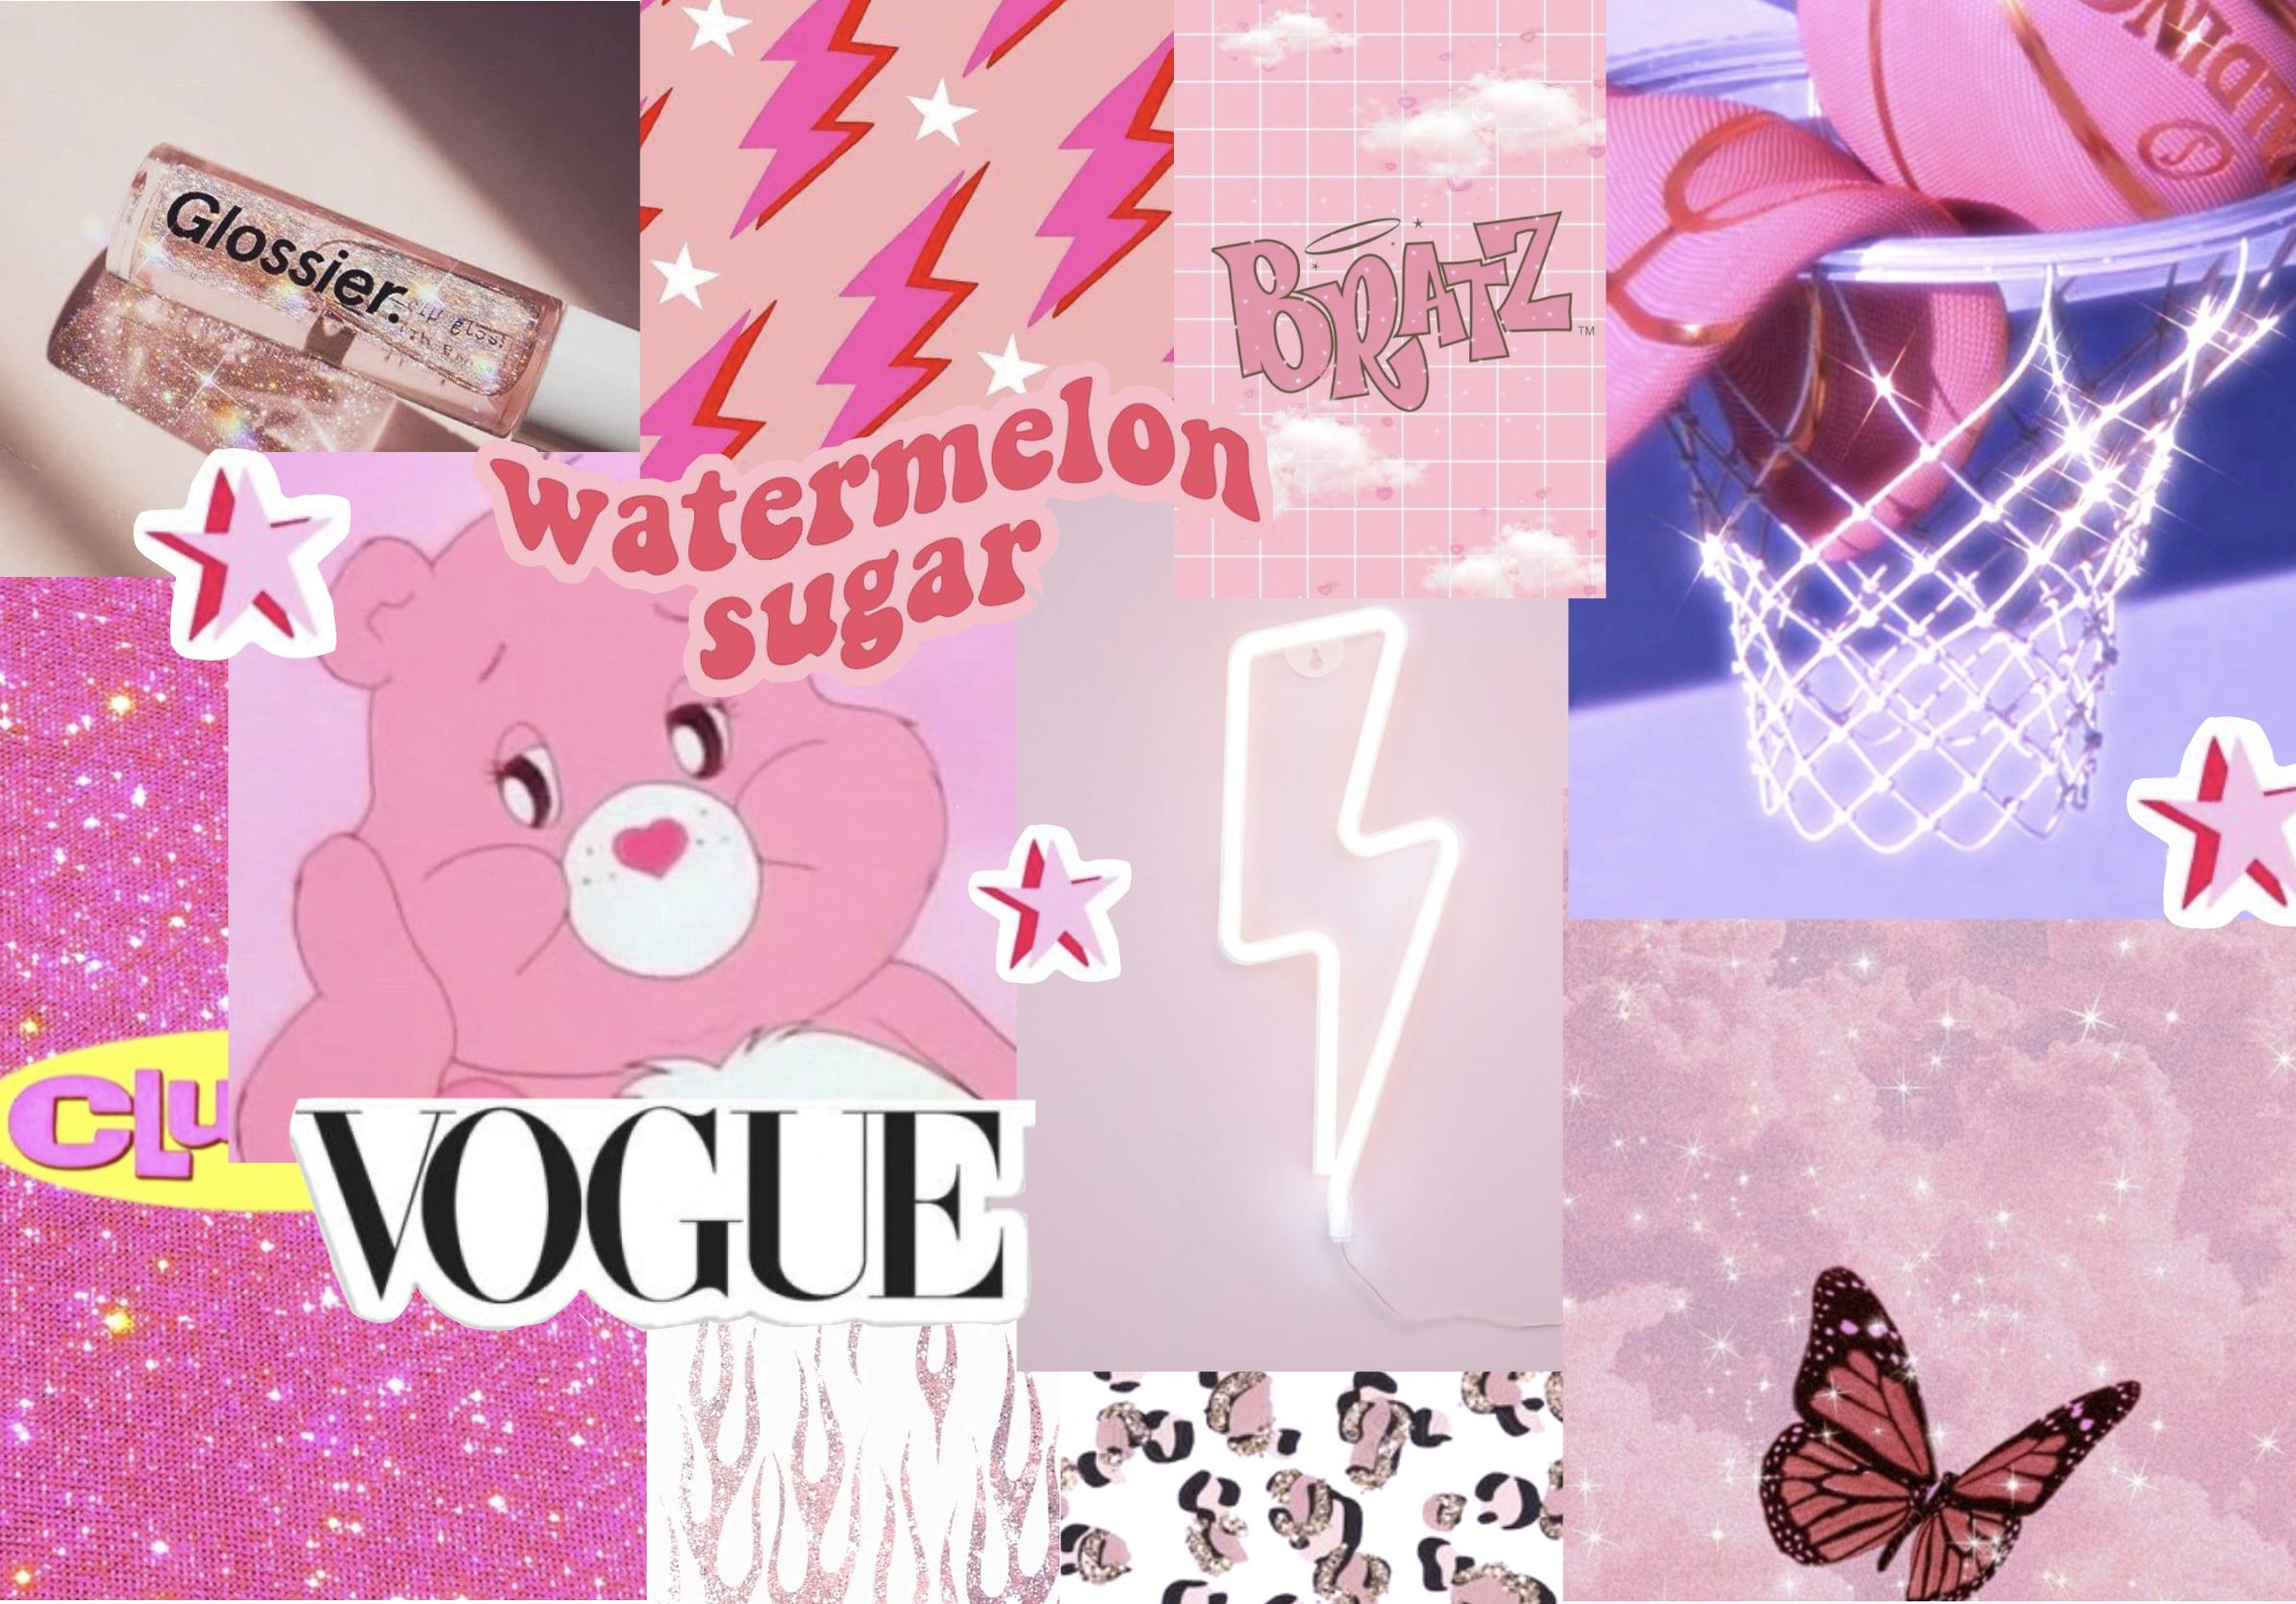 Pink Aesthetic Collage Computer Wallpaper Desktop Wallpapers Cute Laptop Wallpaper Cute Desktop Wallpaper